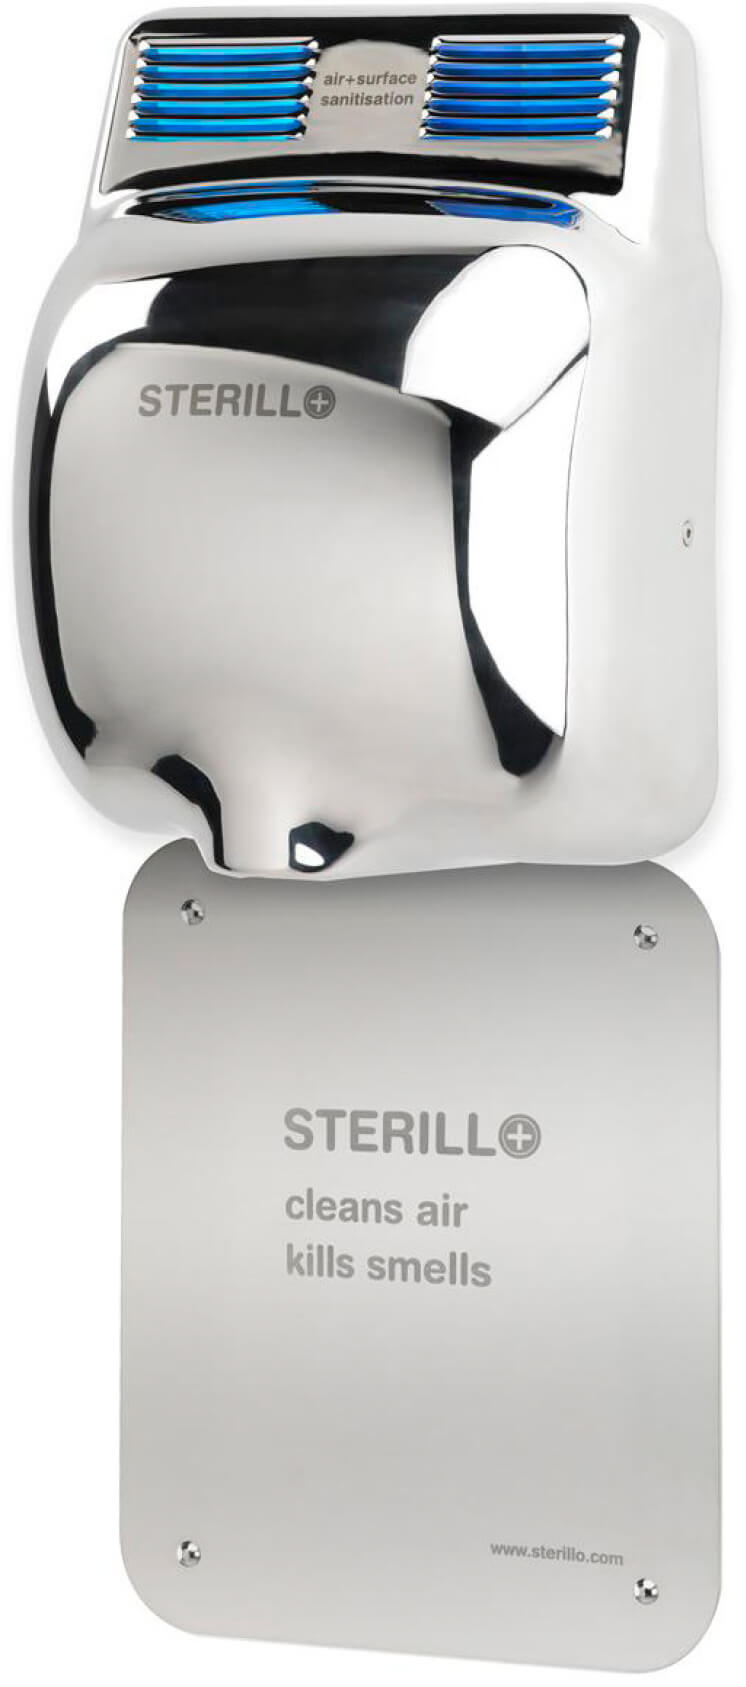 Sterillo Hand Dryer